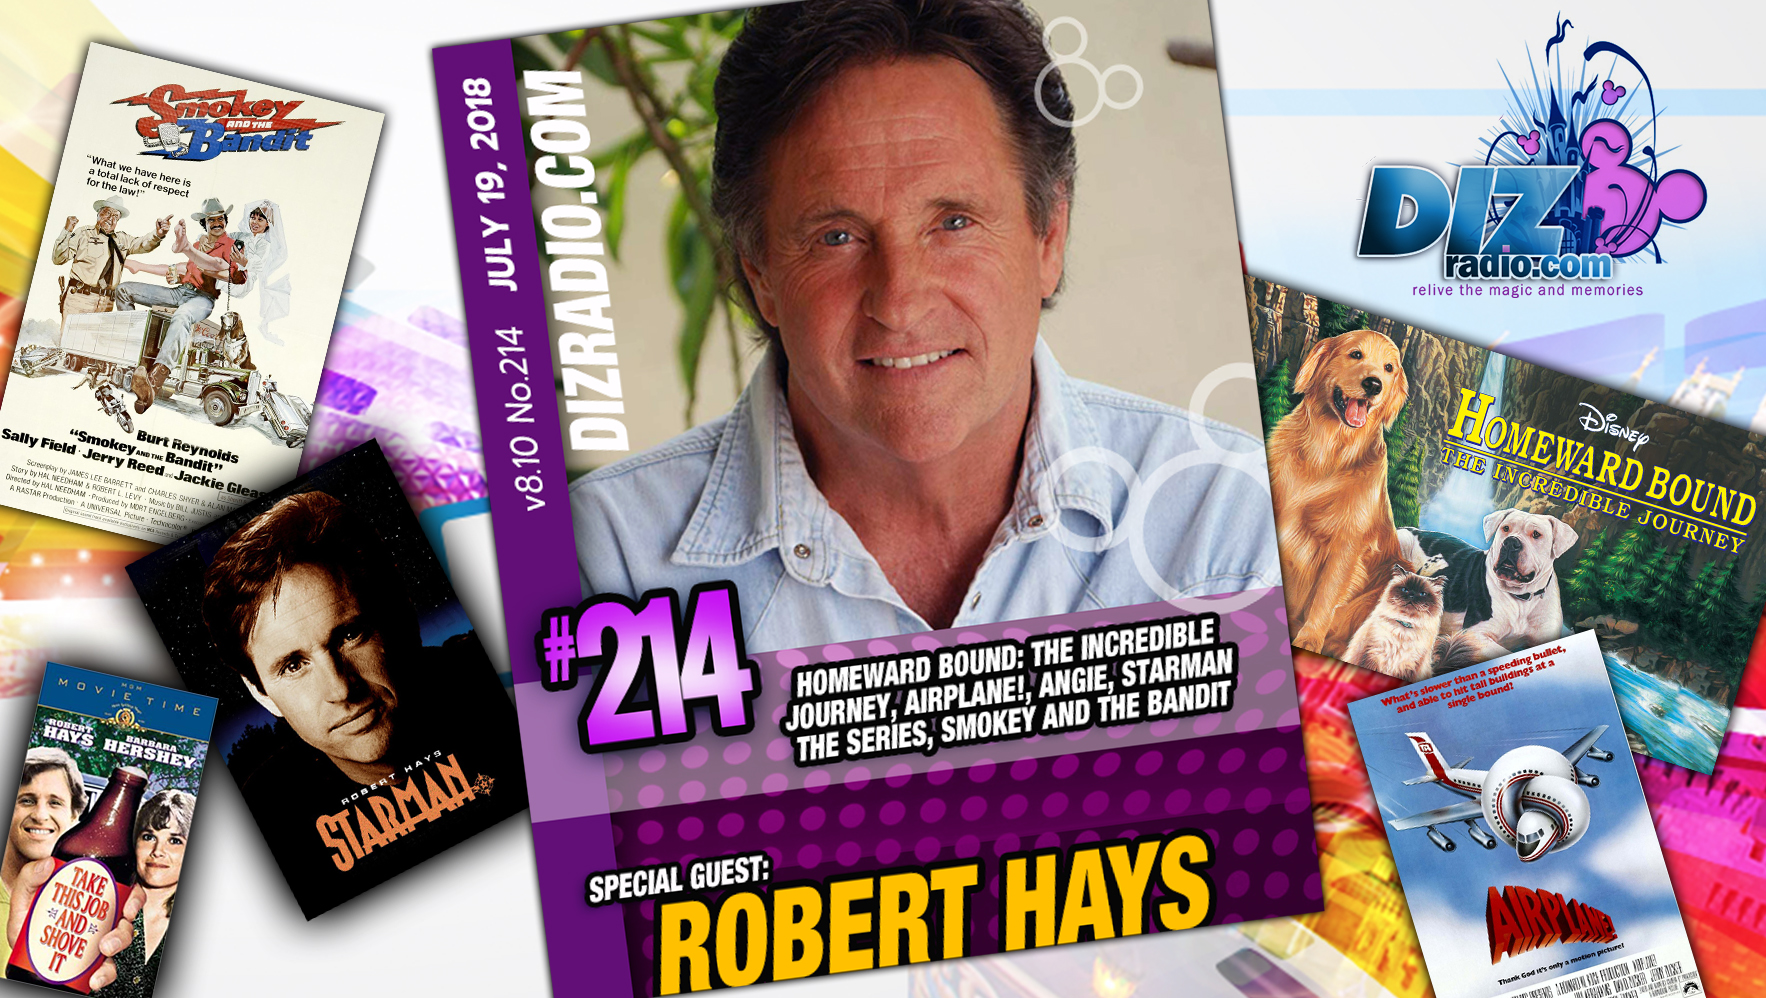 DisneyBlu's DizRadio Disney on Demand Show #214 w/ Special Guest ROBERT HAYS (Homeward Bound, Airplane!, Starman the Series, Angie, Smokey and the Bandit and more)